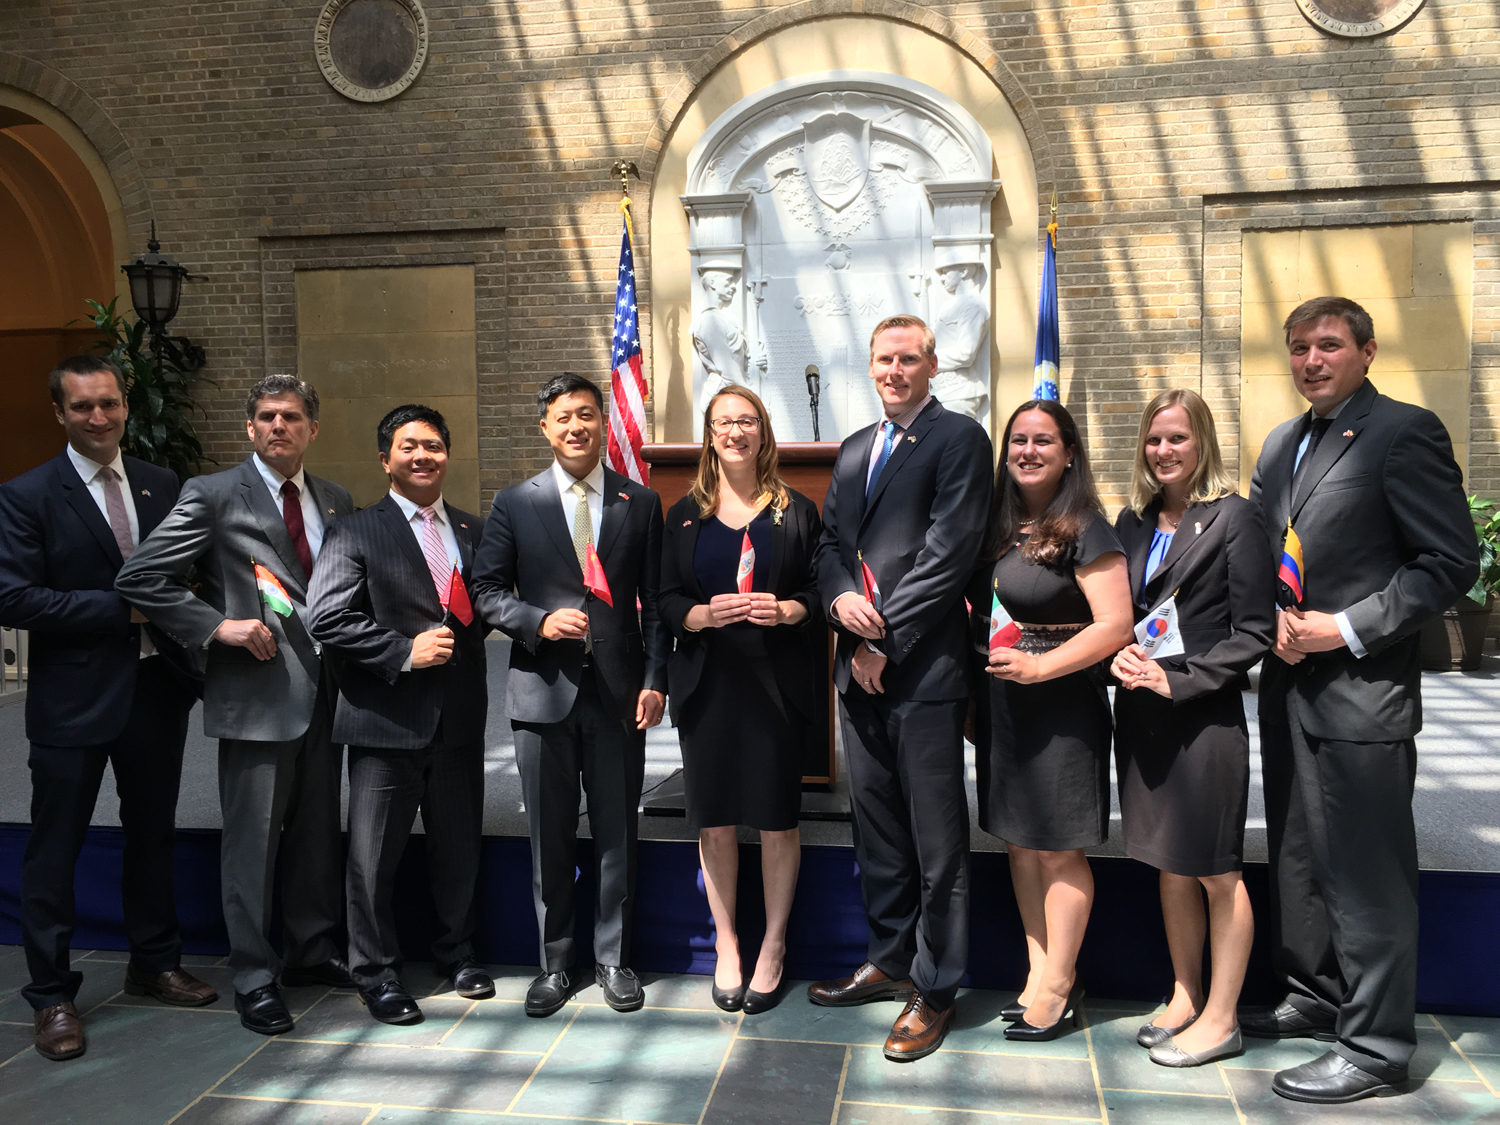 Ten employees of the U.S. Department of Agriculture's (USDA) Foreign Agricultural Service (FAS) were sworn in as Foreign Service Officers today during a ceremony at USDA headquarters in Washington.